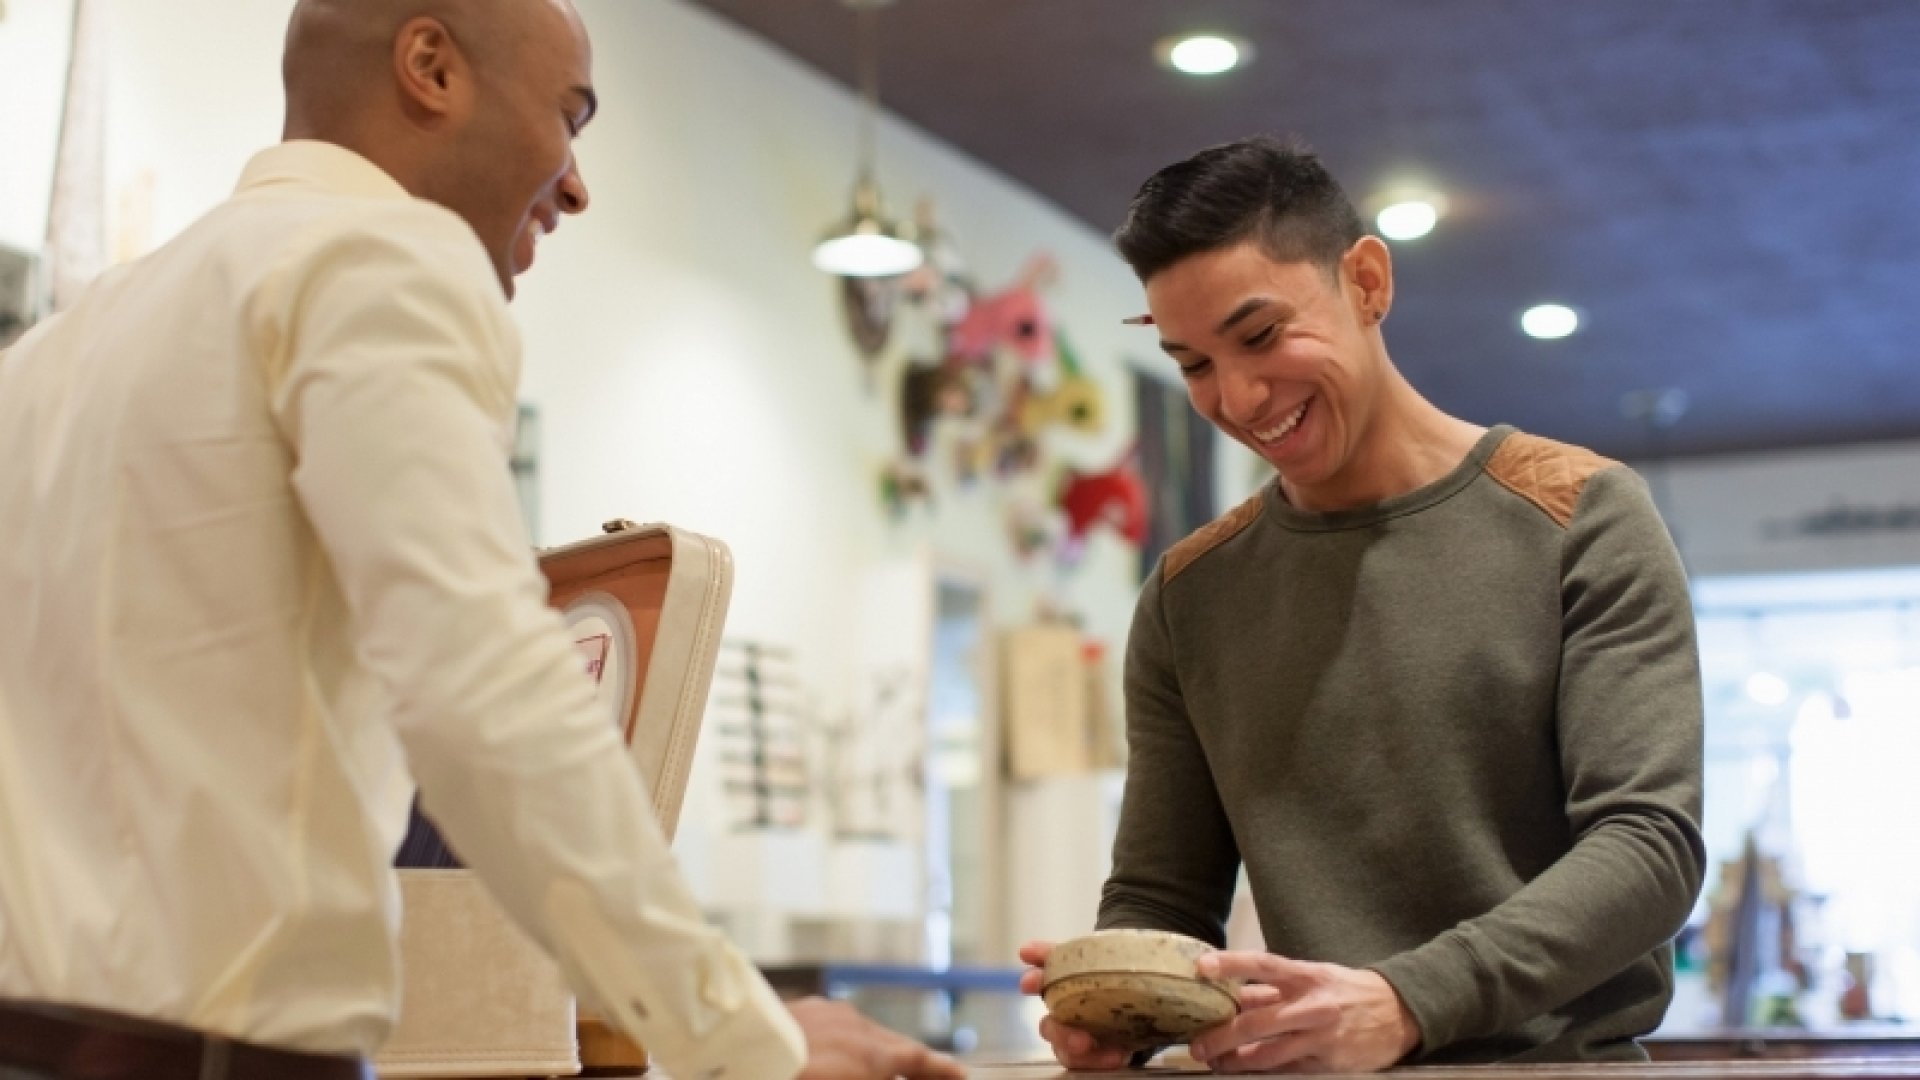 4 Things That Keep Customers Coming Back